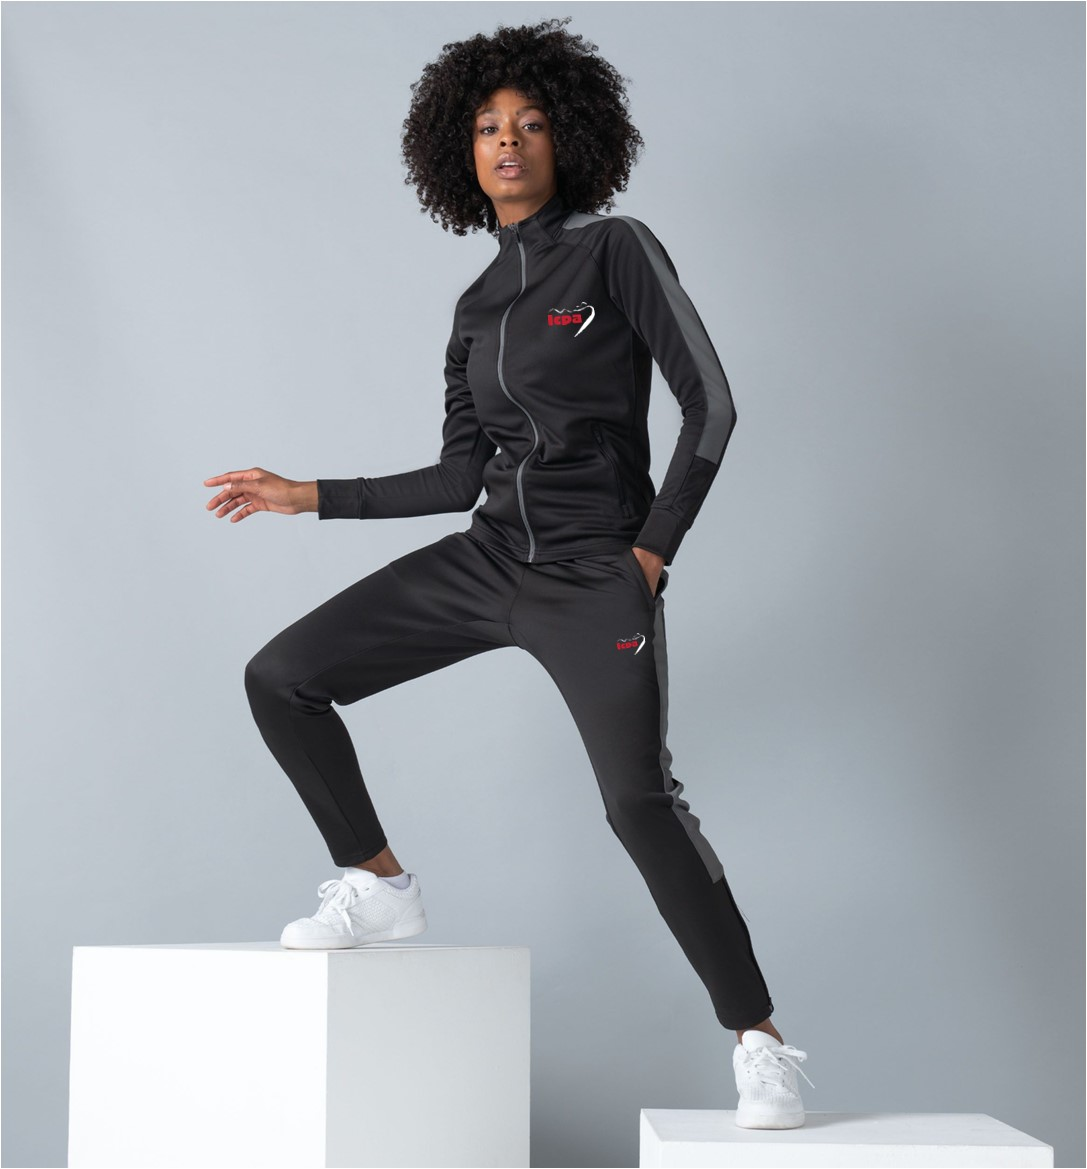 LCPA-001 TRACKSUIT PANTS/BOTTOMS